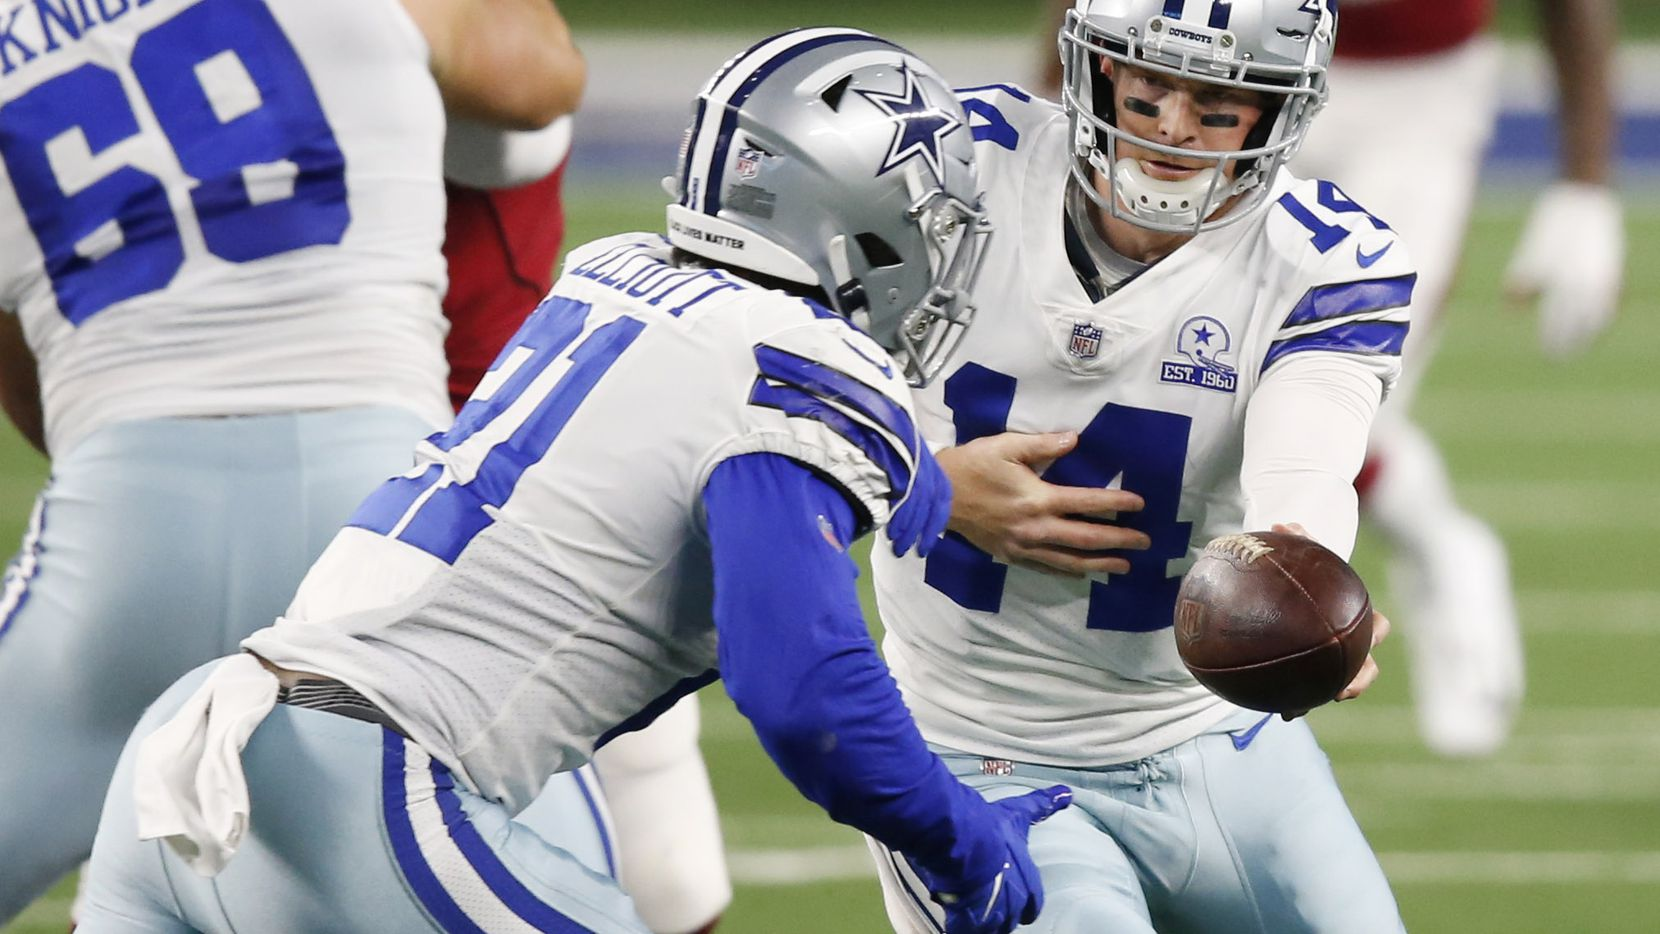 Cowboys quarterback Andy Dalton (14) hands the ball off to running back Ezekiel Elliott (21) during a game against the Cardinals at AT&T Stadium on Monday, Oct. 19, 2020, in Arlington.